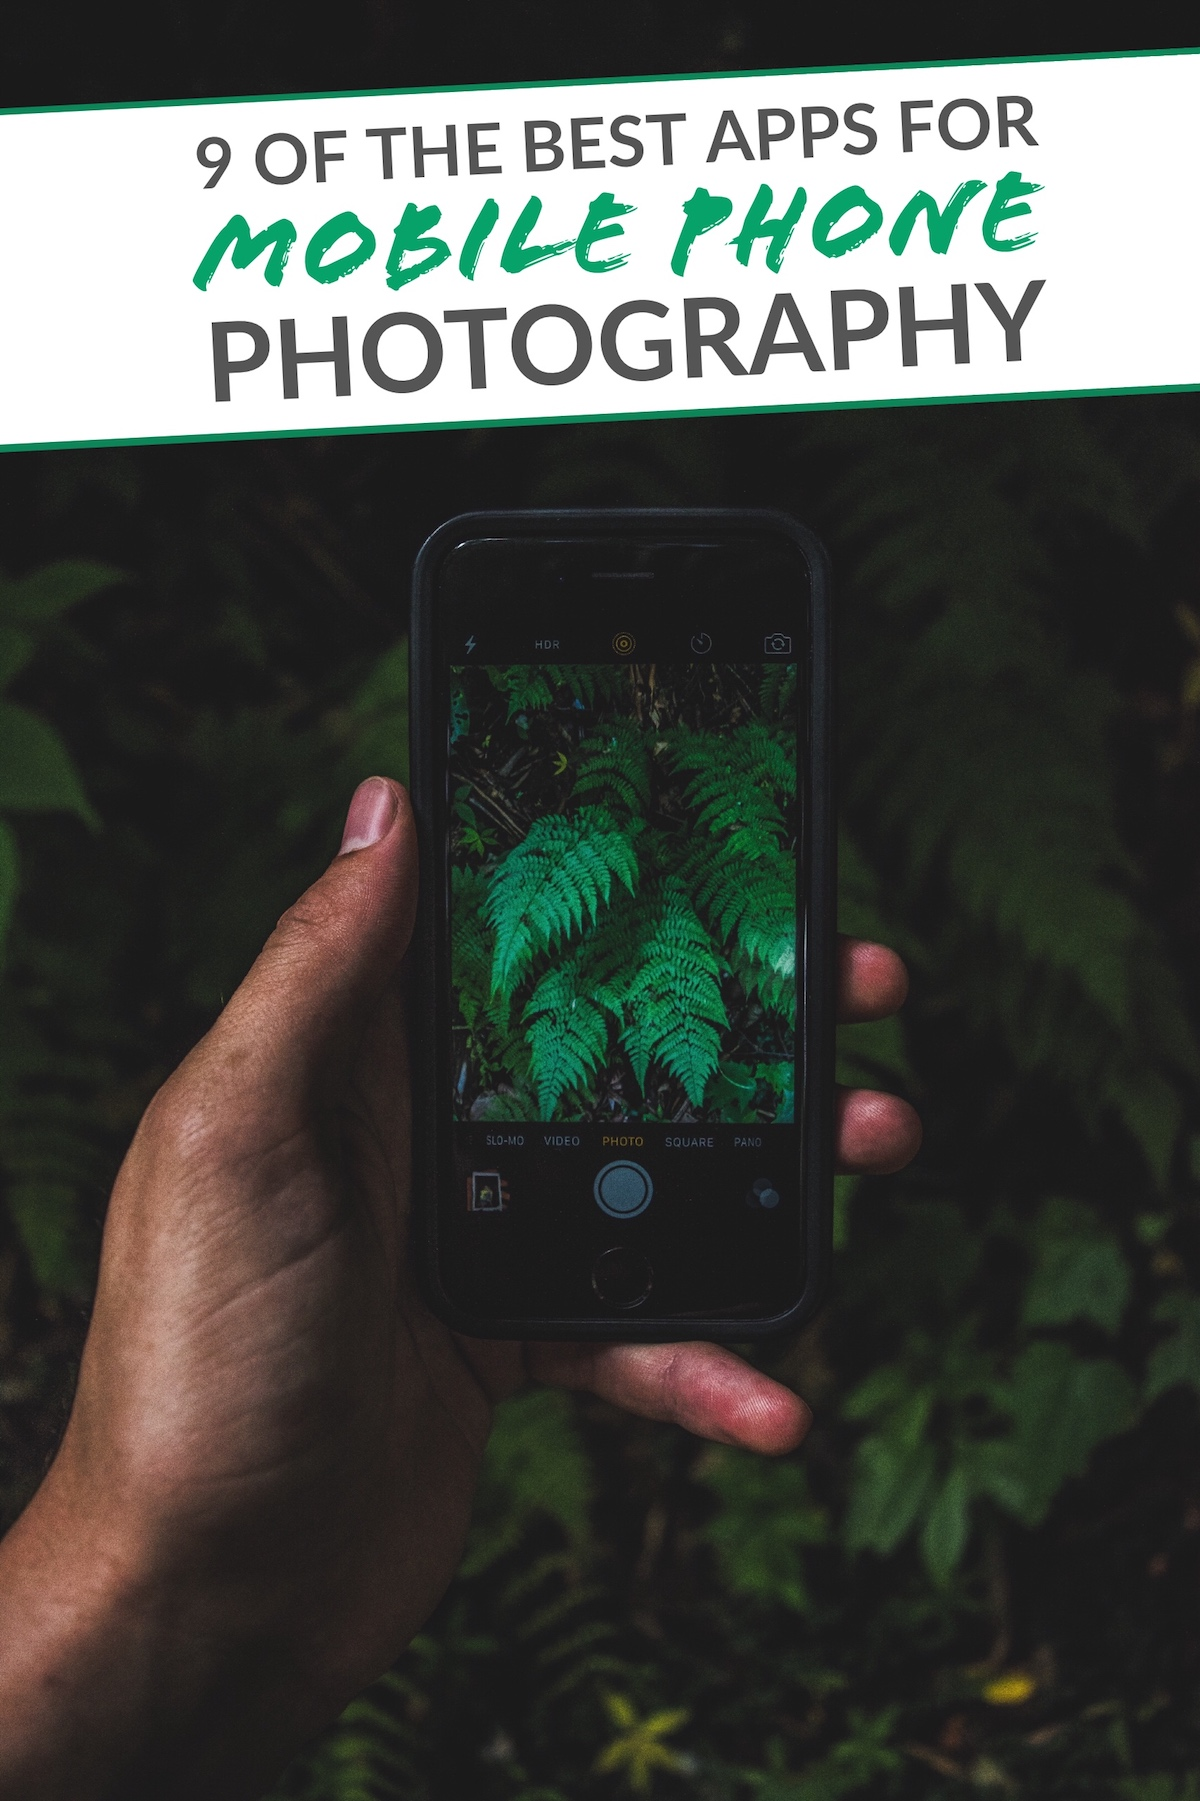 9 of the Best Apps to Help You Do Awesome Mobile Phone Photography